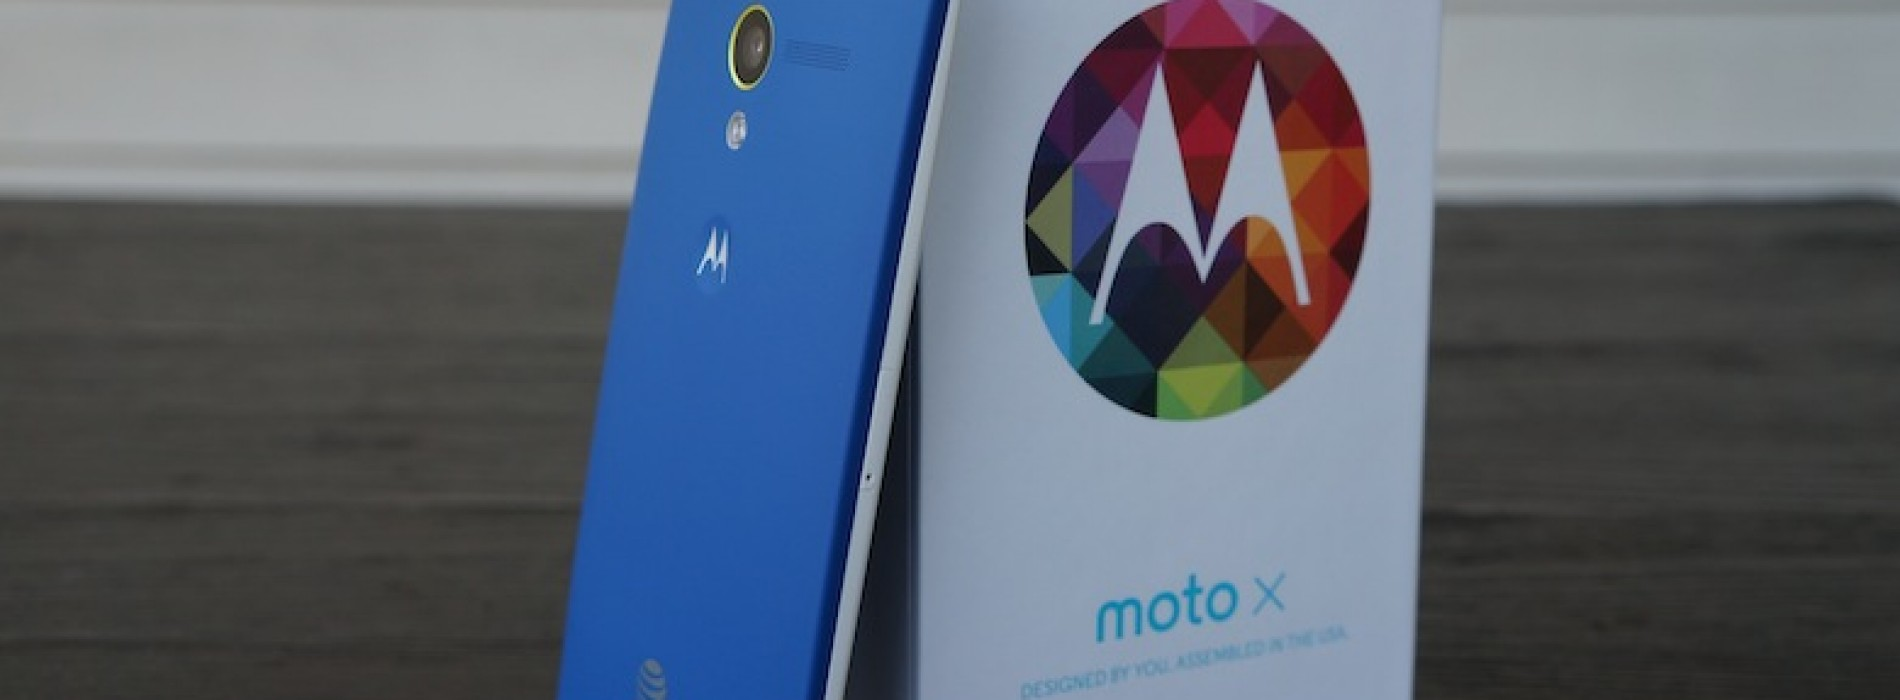 Moto X+1 benchmarks point to a Snapdragon 800 SoC and a 5.2″ display